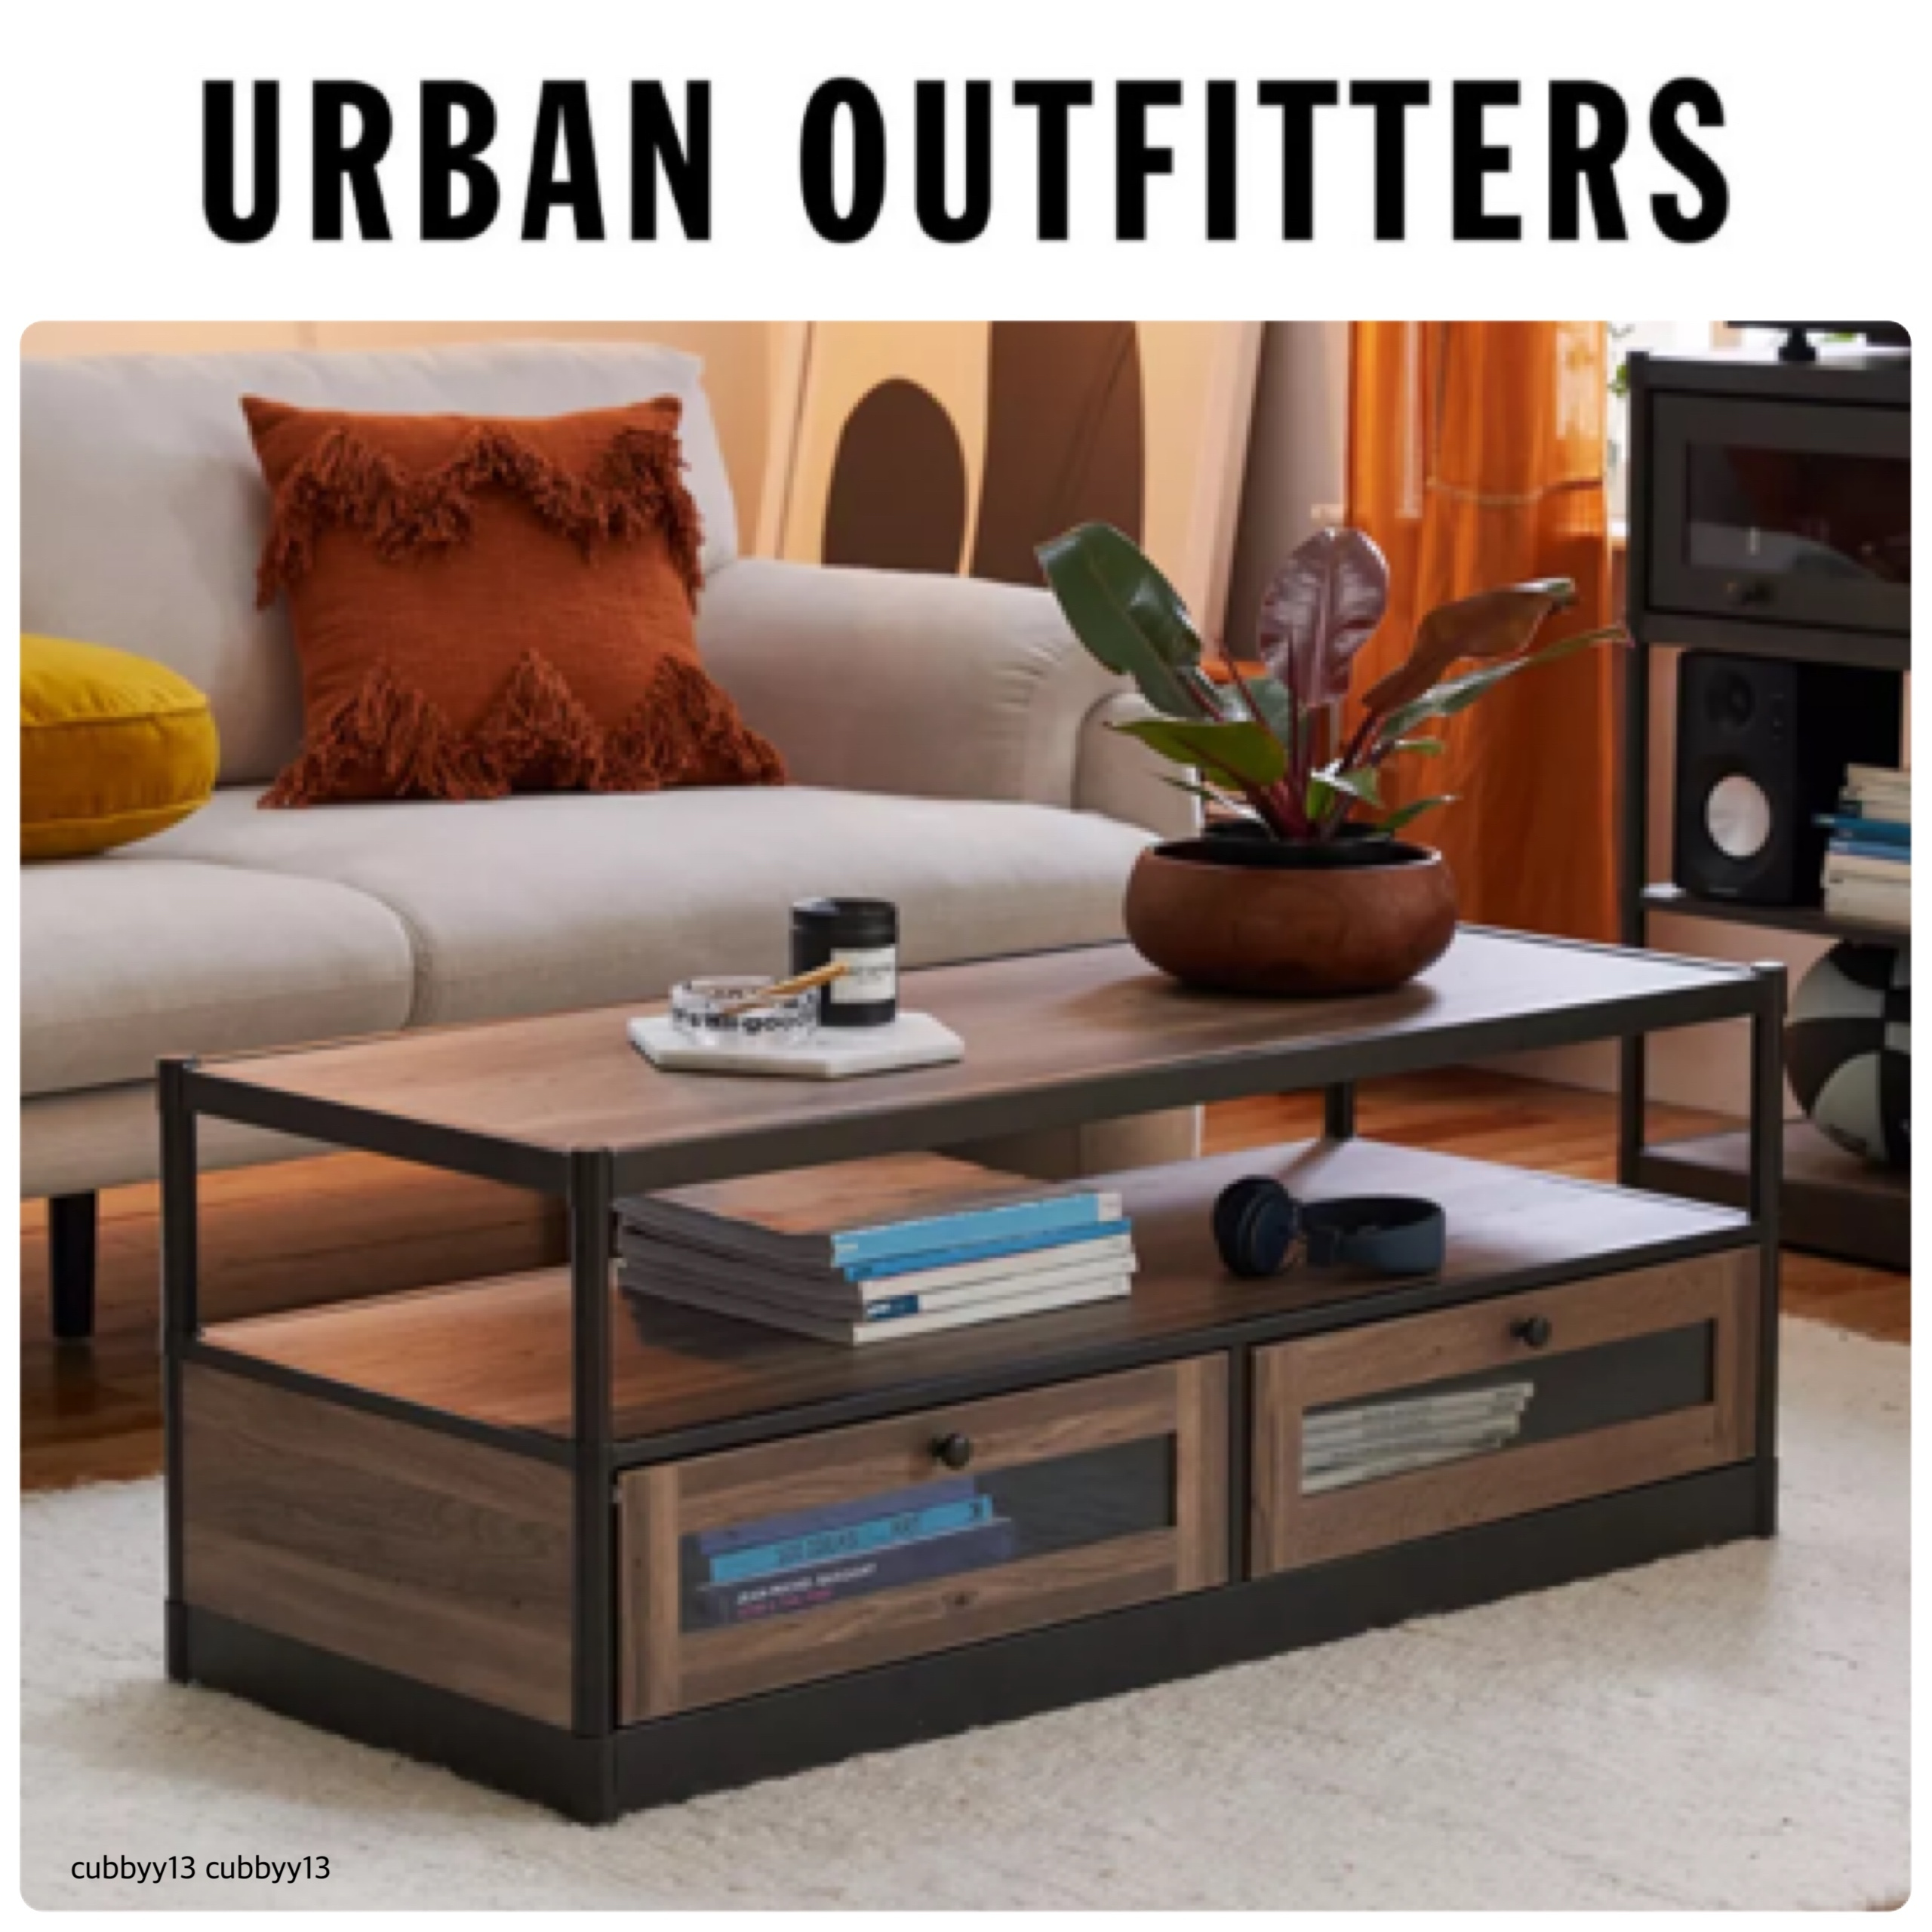 Urban Outfitters ヴォーン コーヒーテーブル 収納付き☆ (Urban Outfitters/机・テーブル) 72348121